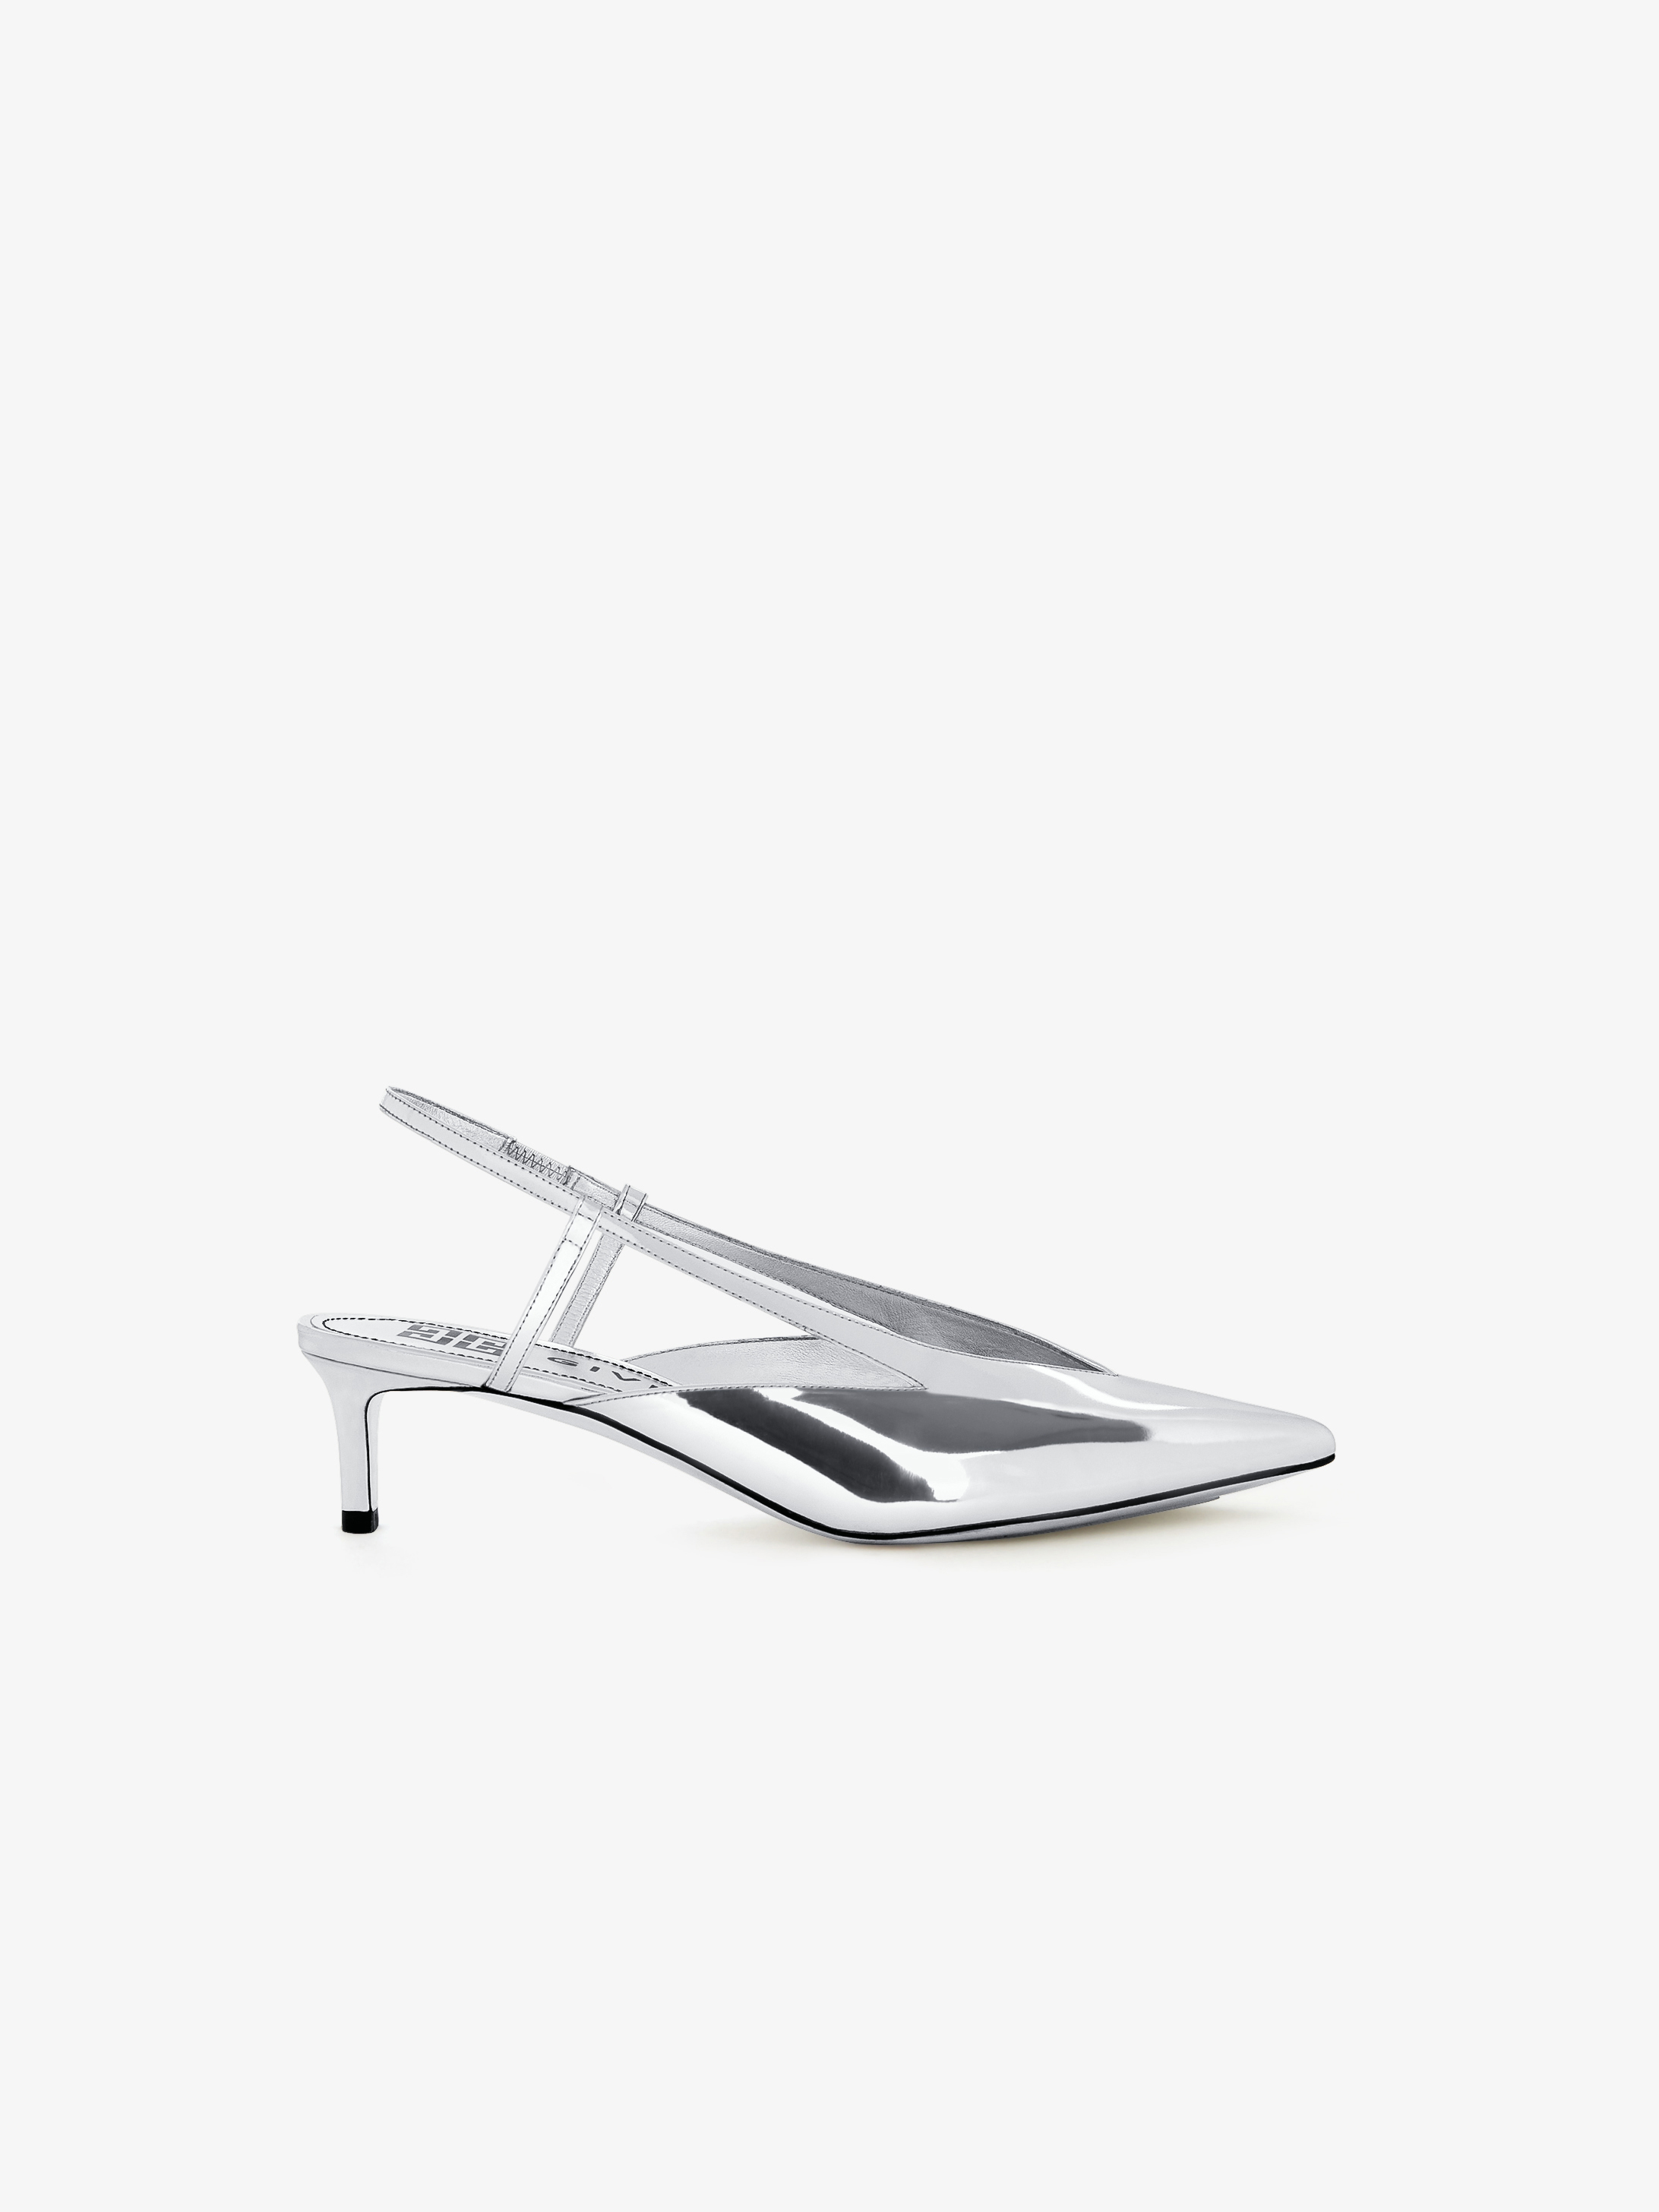 Miror leather sling back pumps with graphic cut out